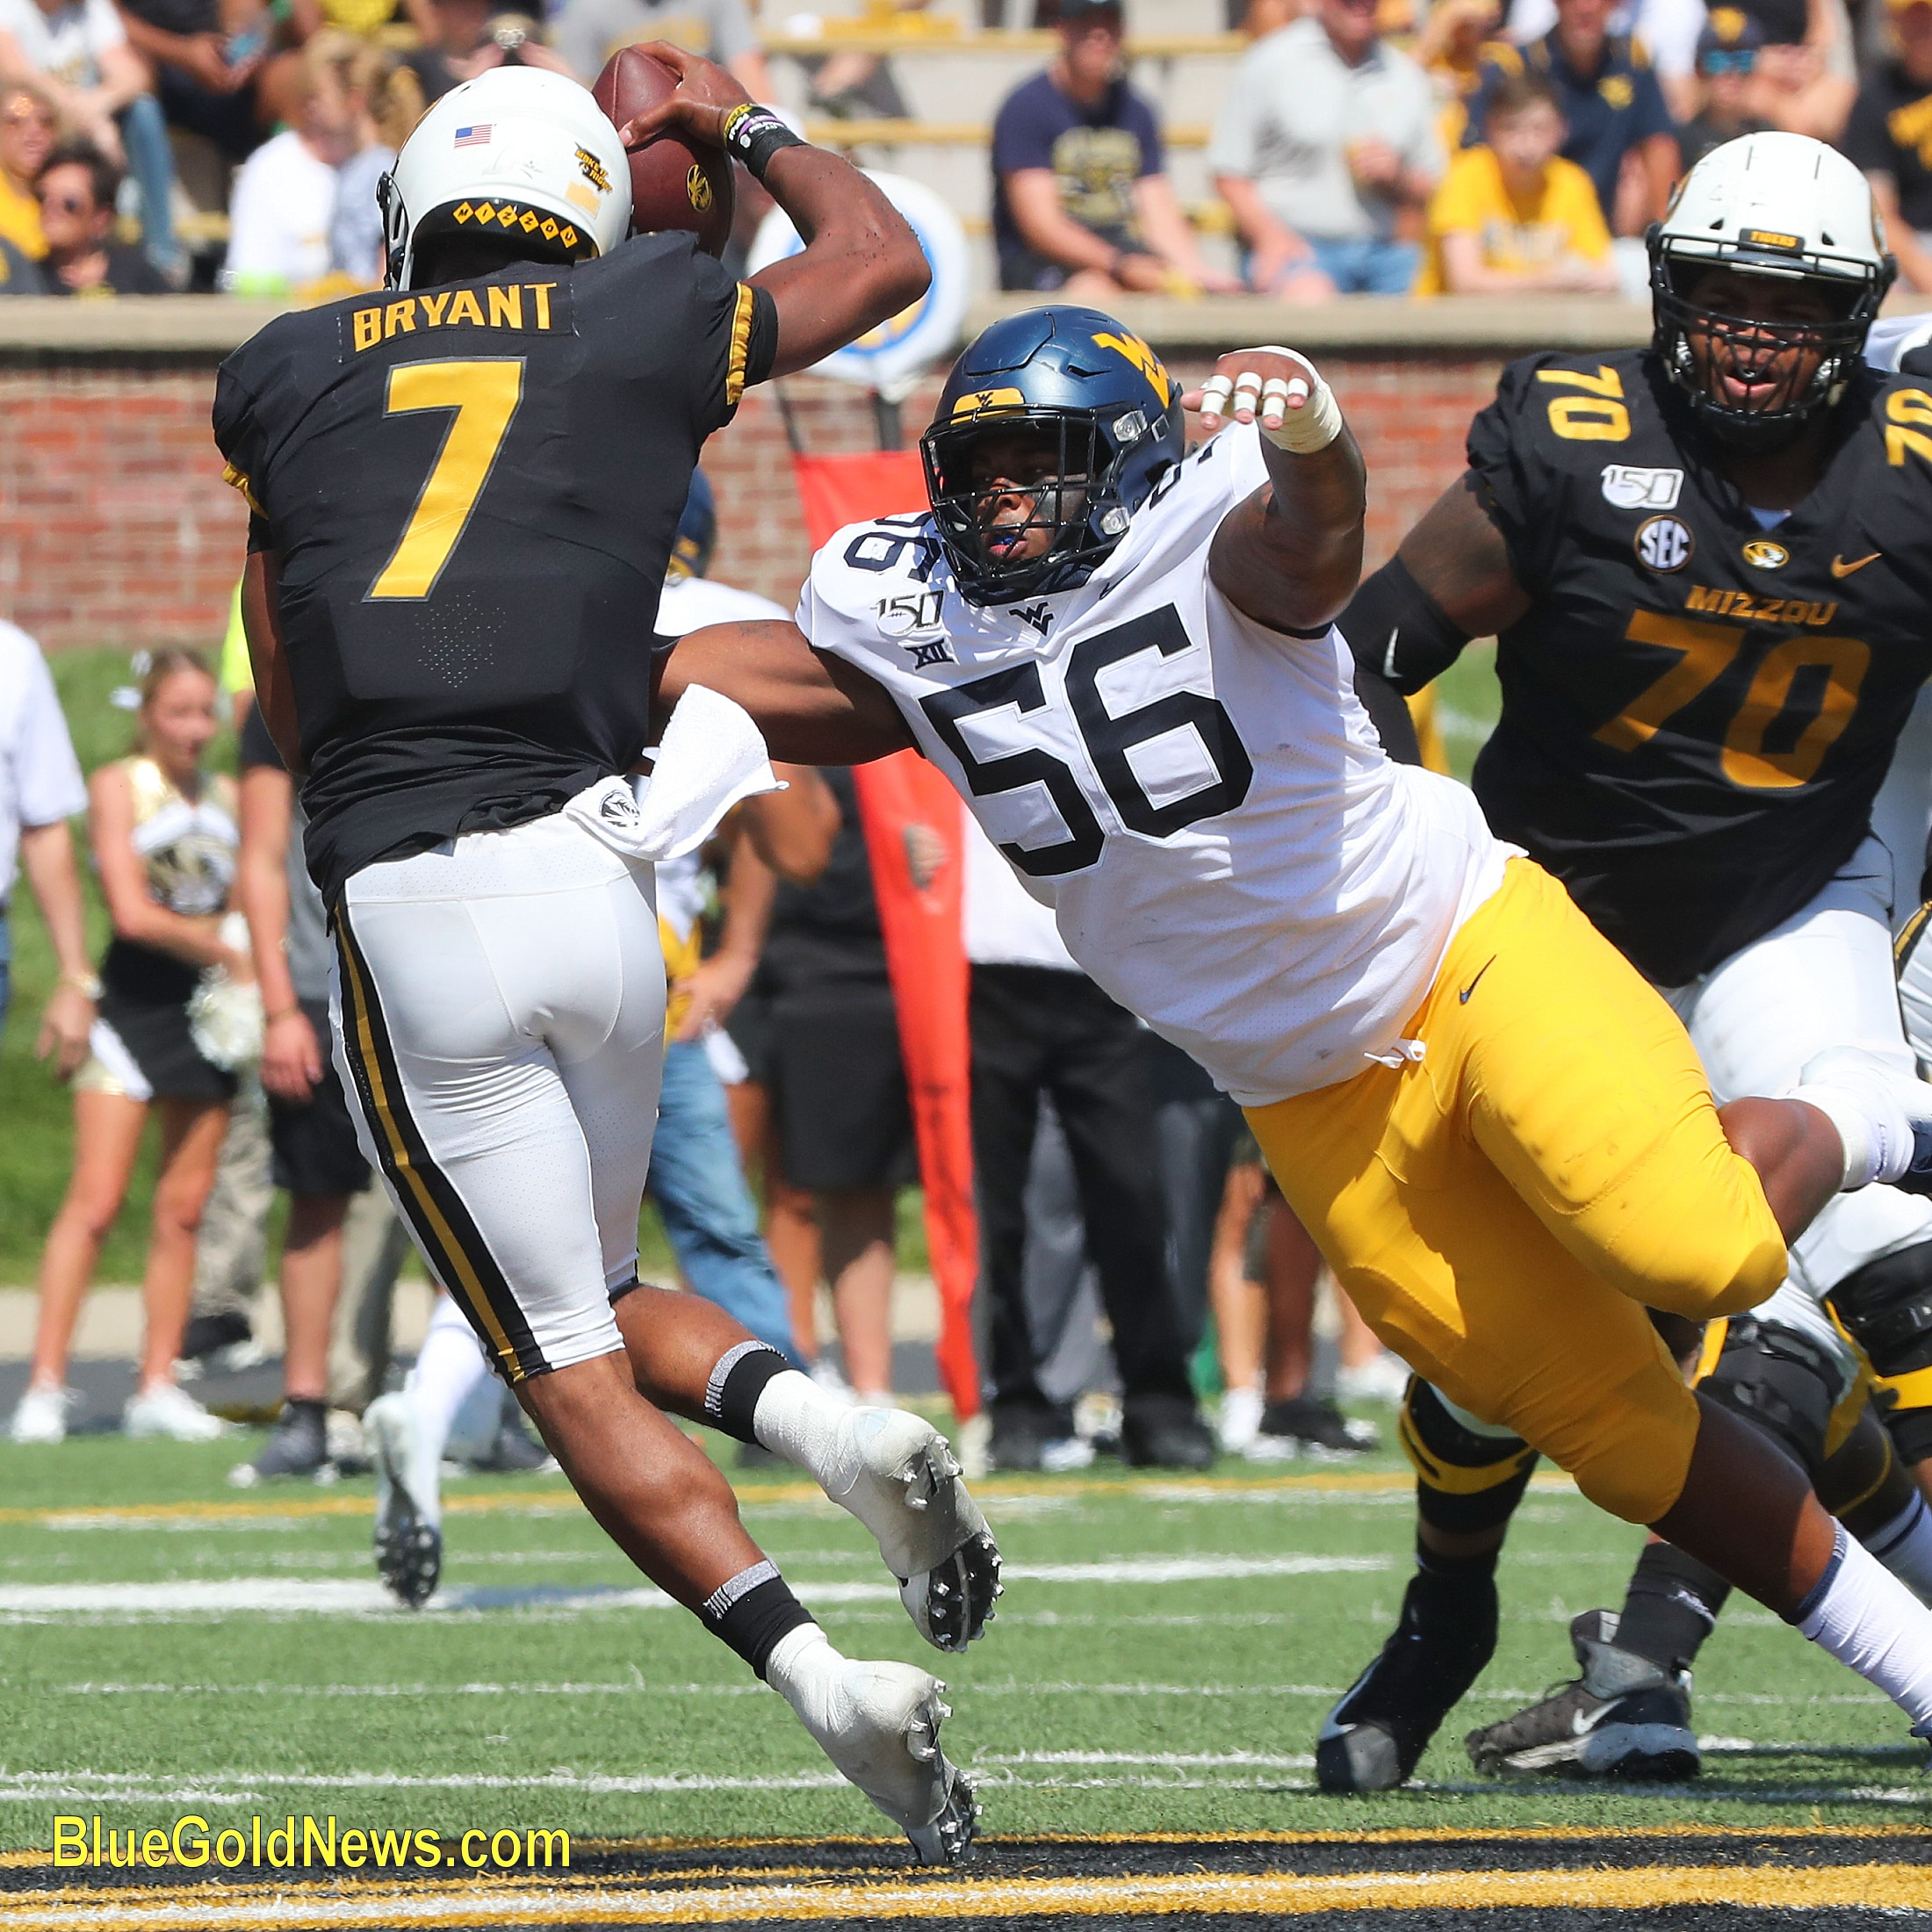 Kolby Harvell-Peel named to Bednarik Award watch list